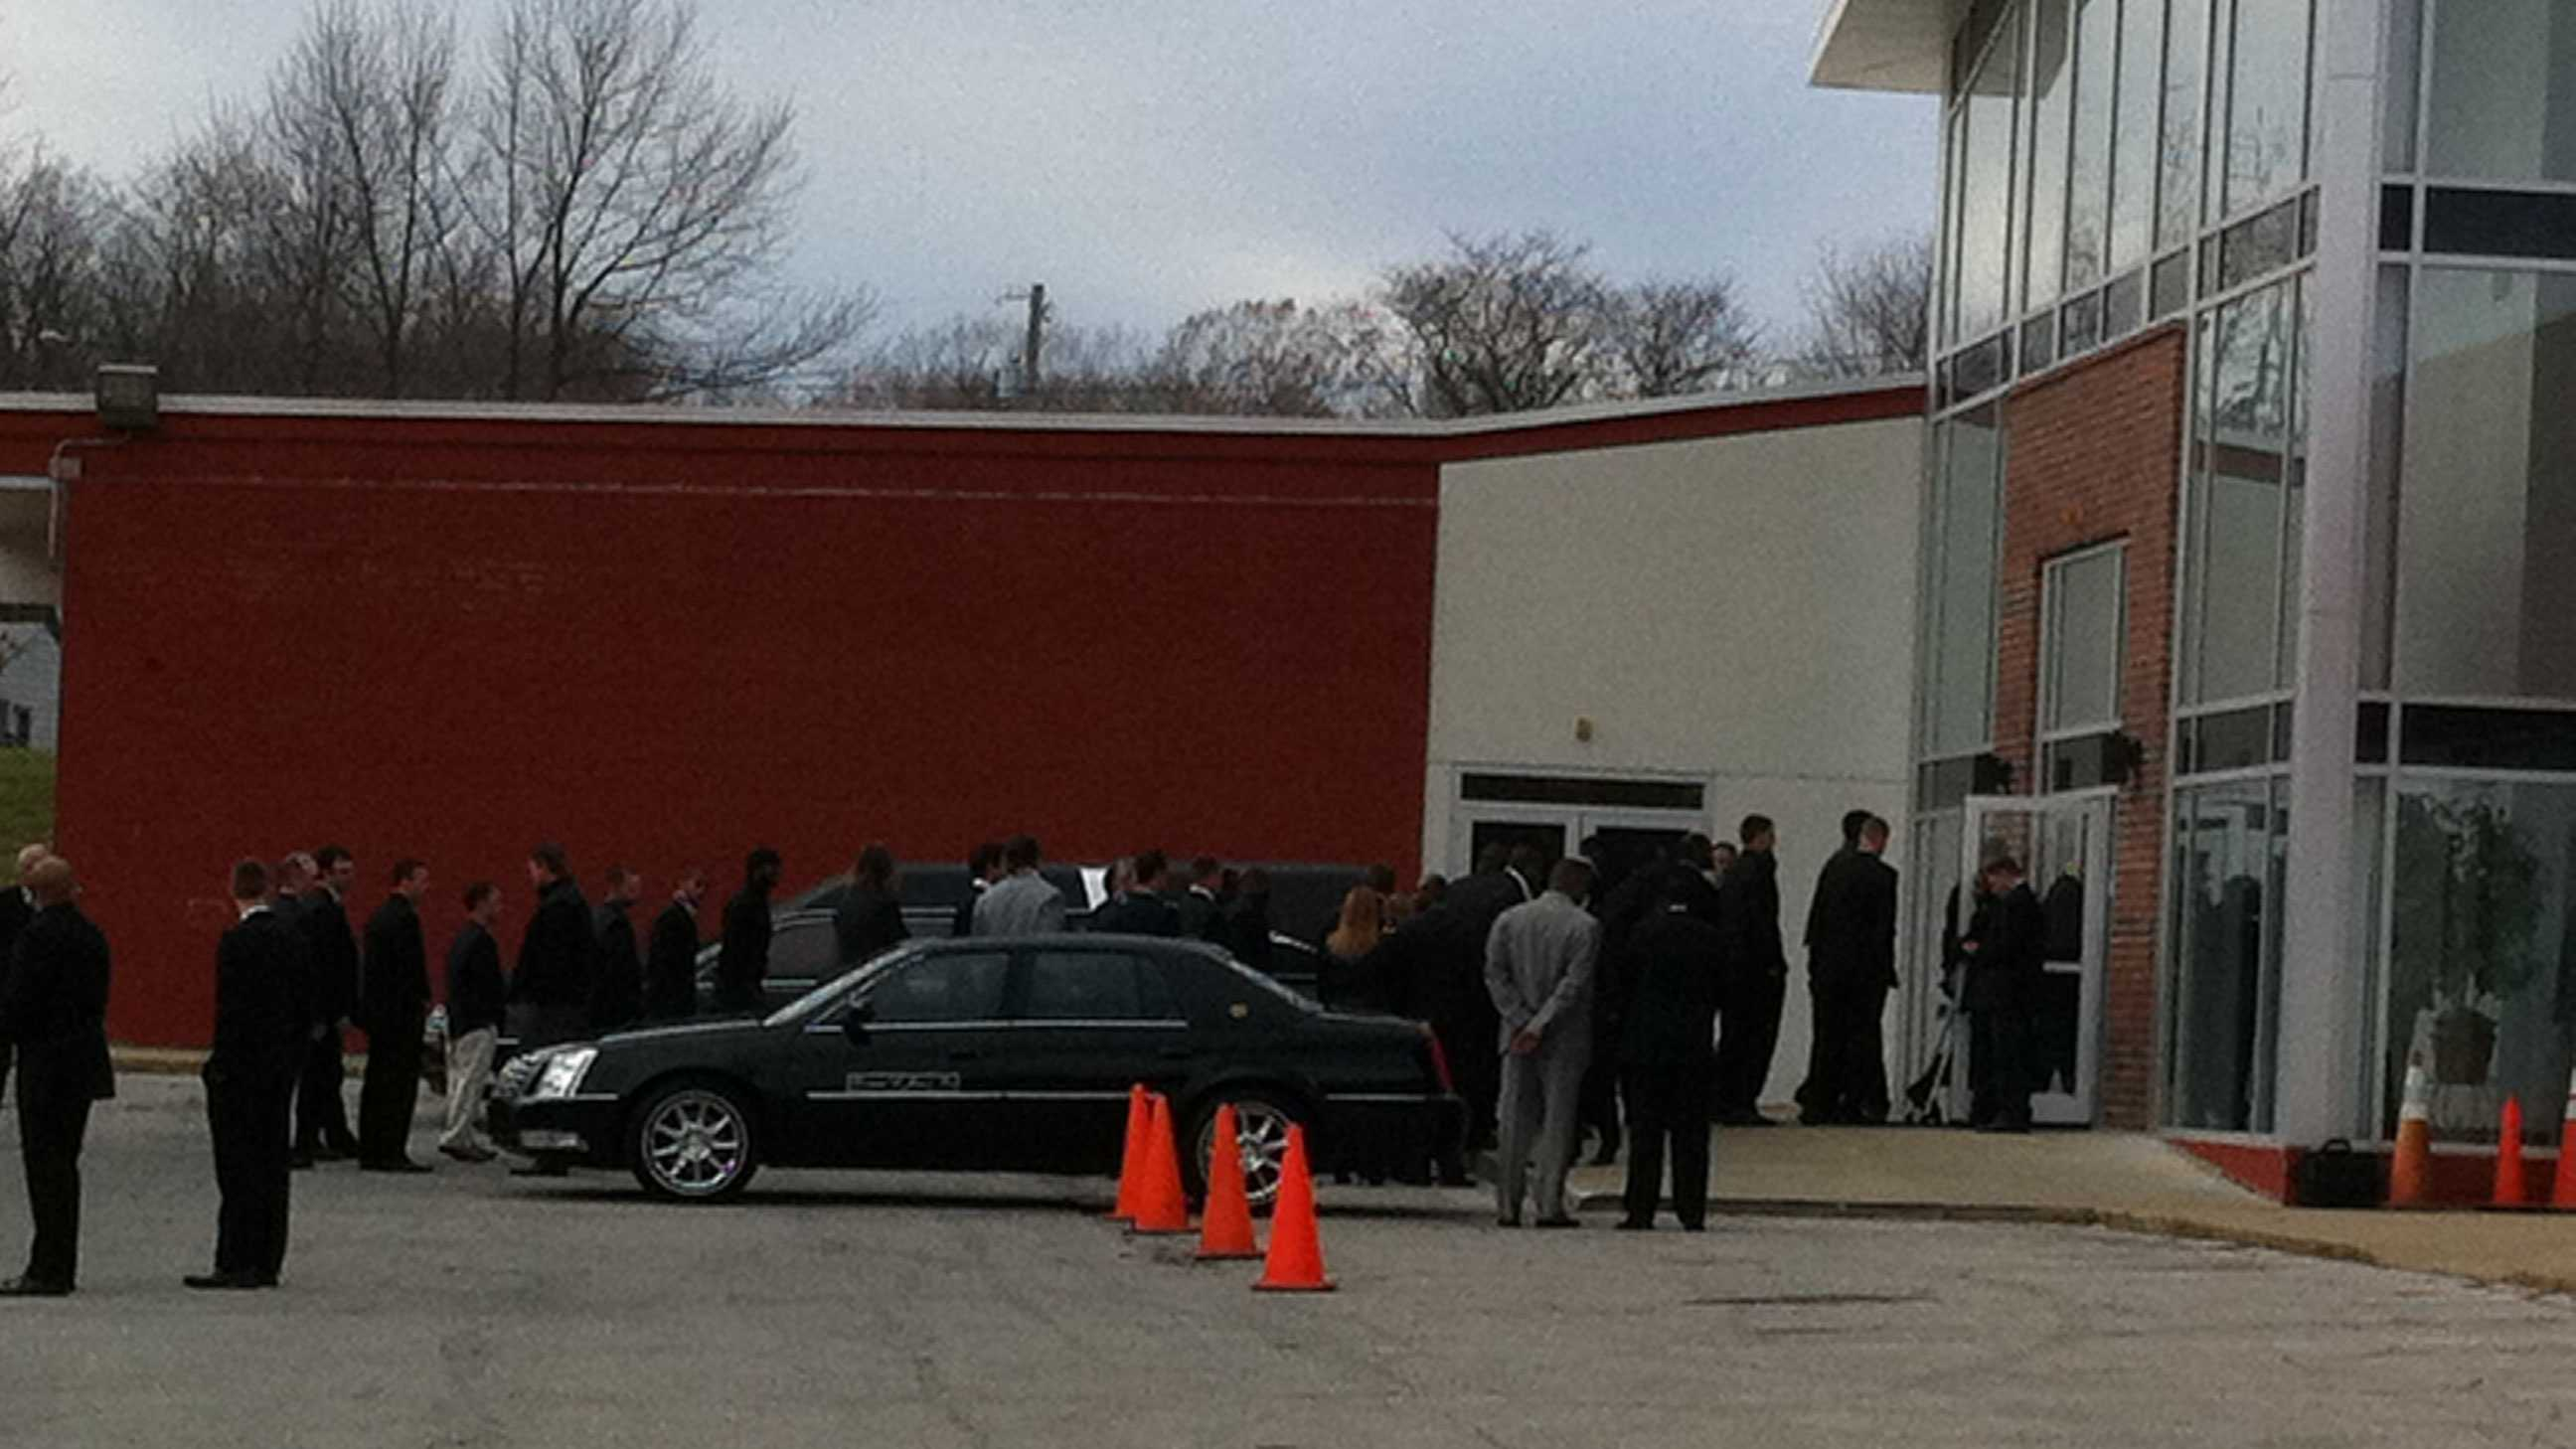 Chiefs players arrive at Jovan Belcher memorial